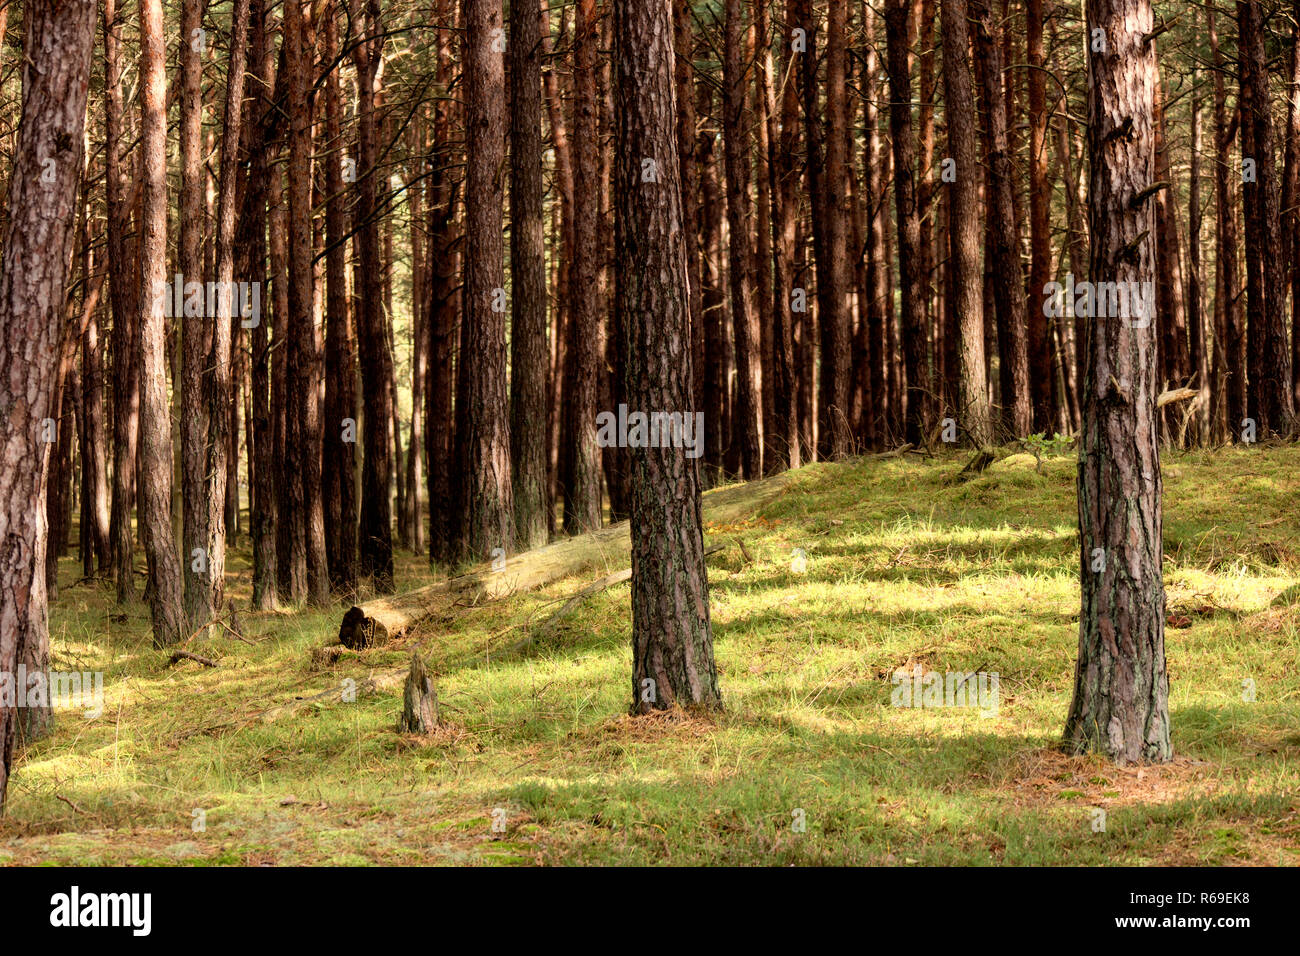 Primeval Forest On Darss In Germany - Stock Image